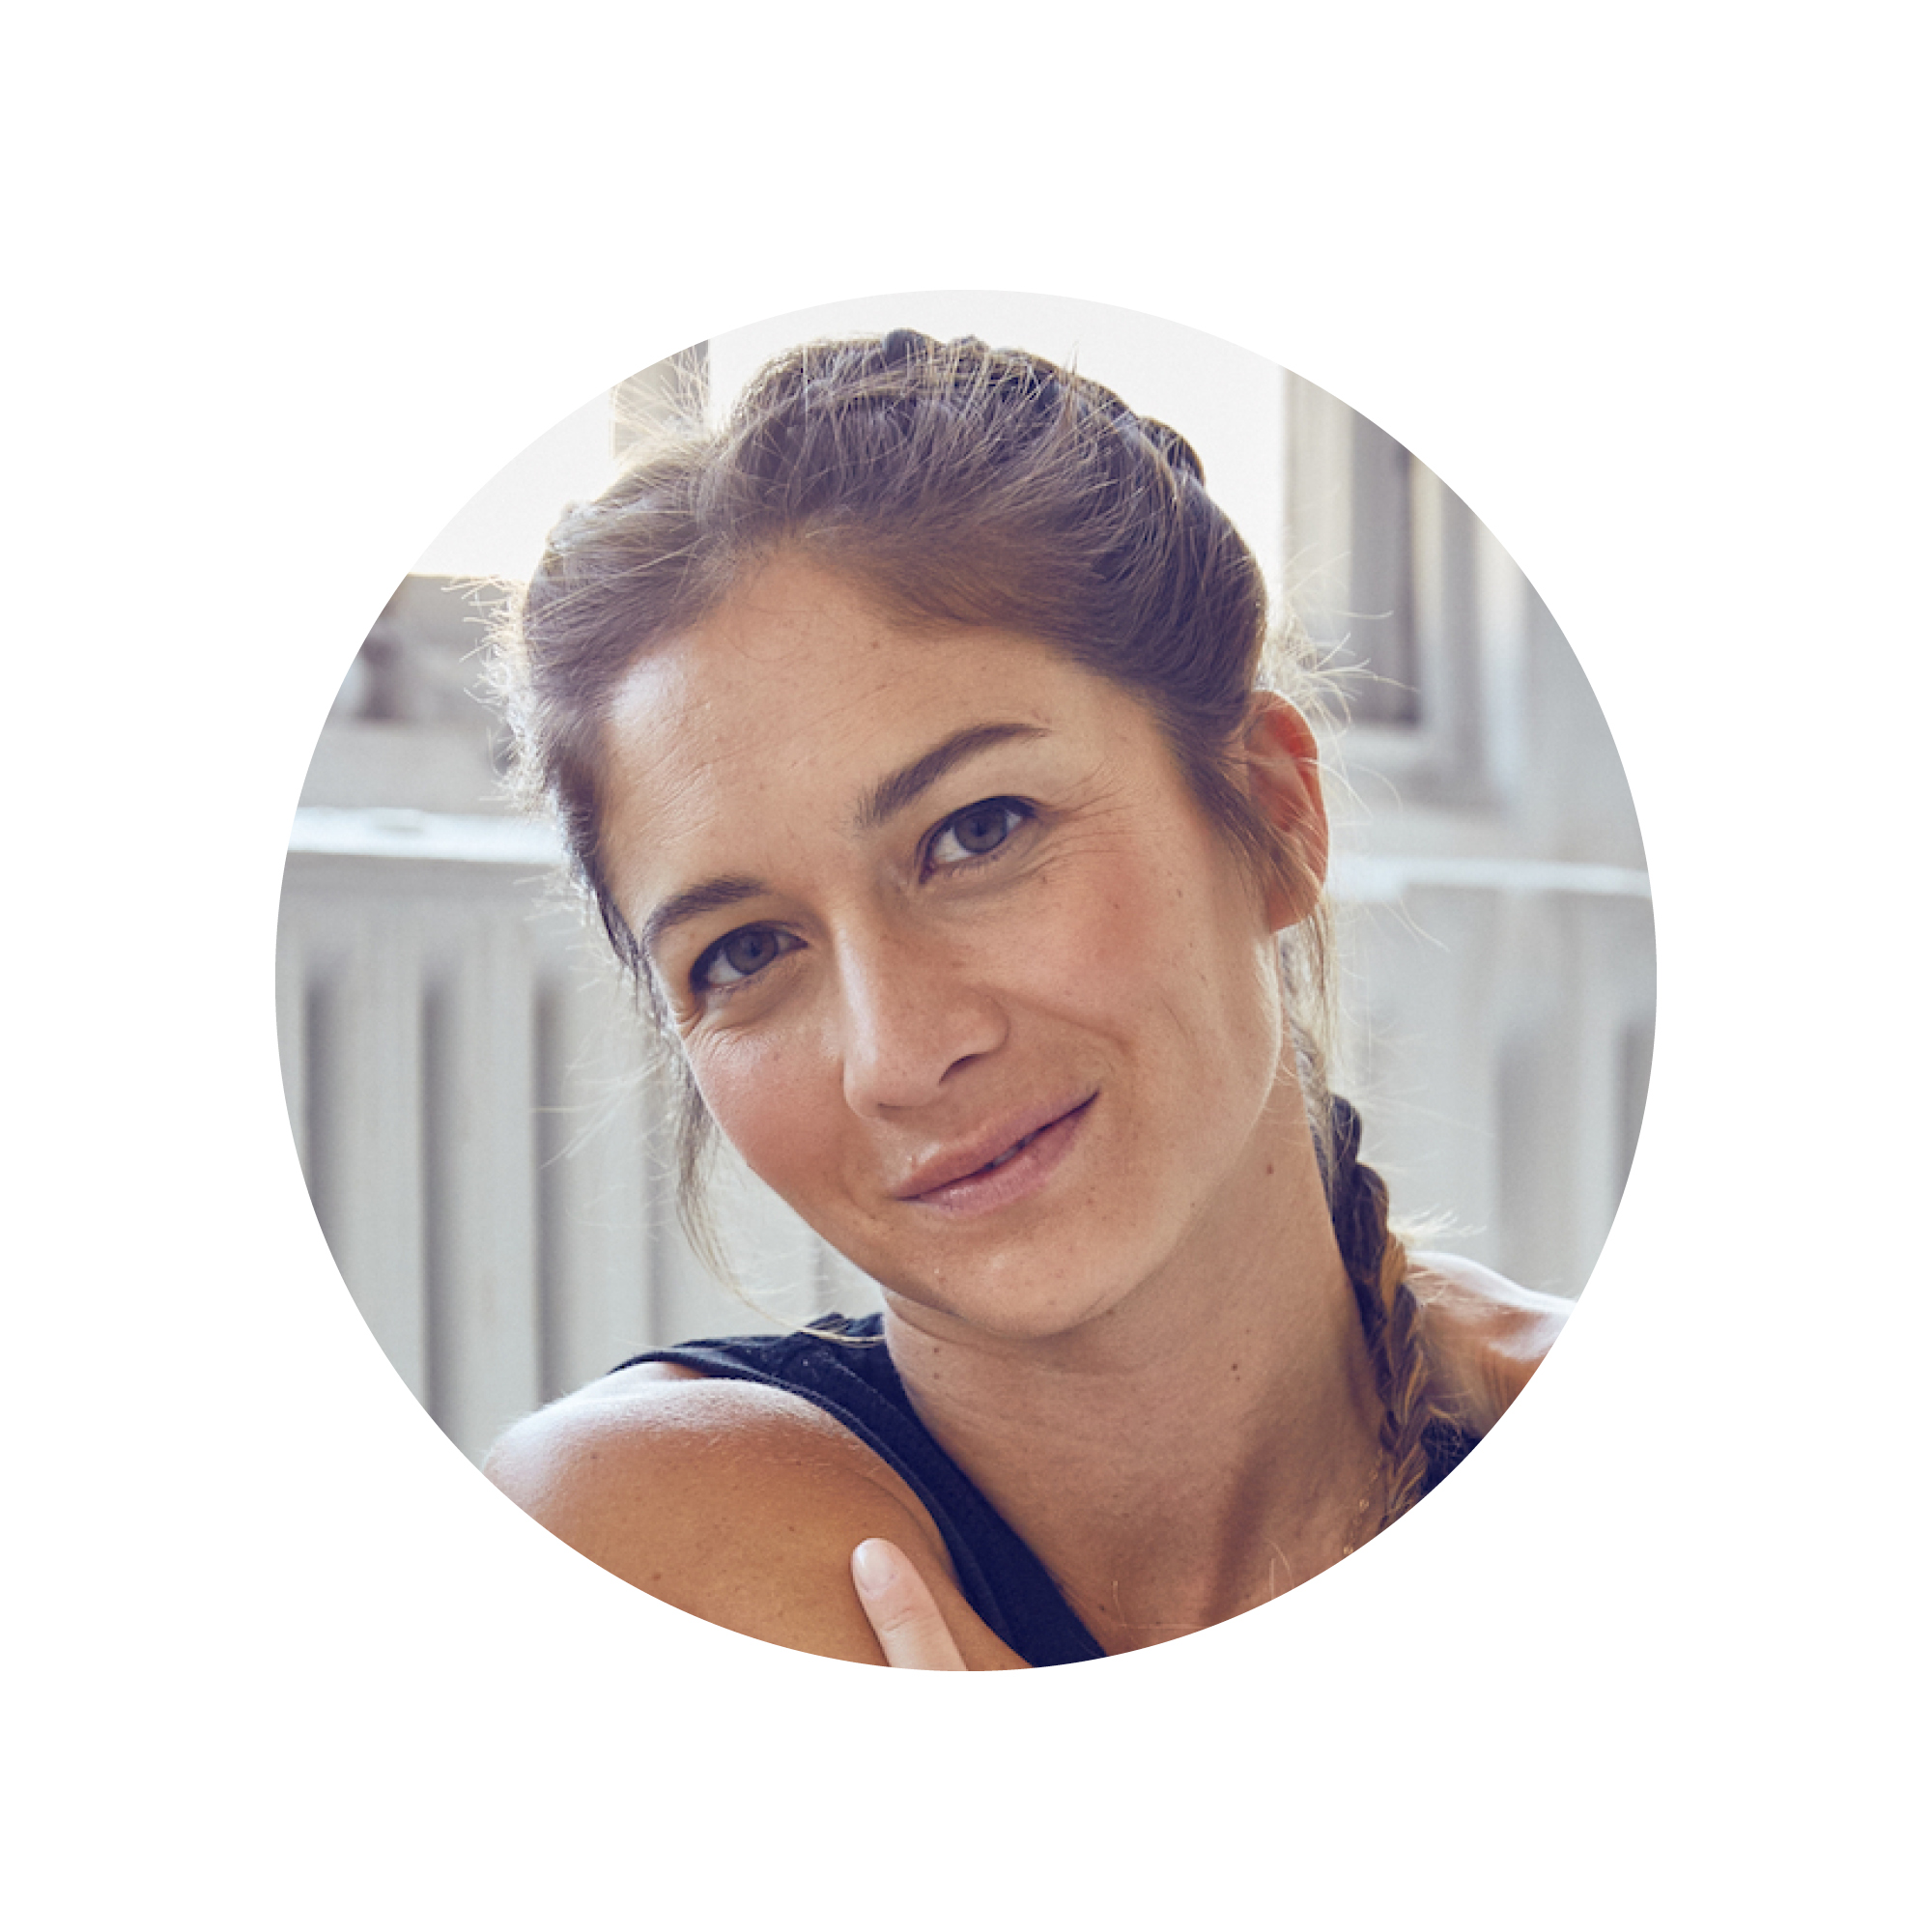 """""""You've got to ask people - what's the thing you hate about your job?"""" - Peloton has completely changed the fitness industry, in part because of the revolutionary tech but also because of the amazing, celebrity-like instructors at the helm of it. One of those incredible faces is Emma Lovewell, one of my personal favorites and the guest on this week's podcast!Emma talks about her life beyond the bike - her college experiences, the struggles of being Asian and American but not quite fitting entirely into either group, the wealth disparities that made themselves apparent at different phases of her life and how she forged her own and followed her true passion. Deep, right? You don't want to miss this conversation."""